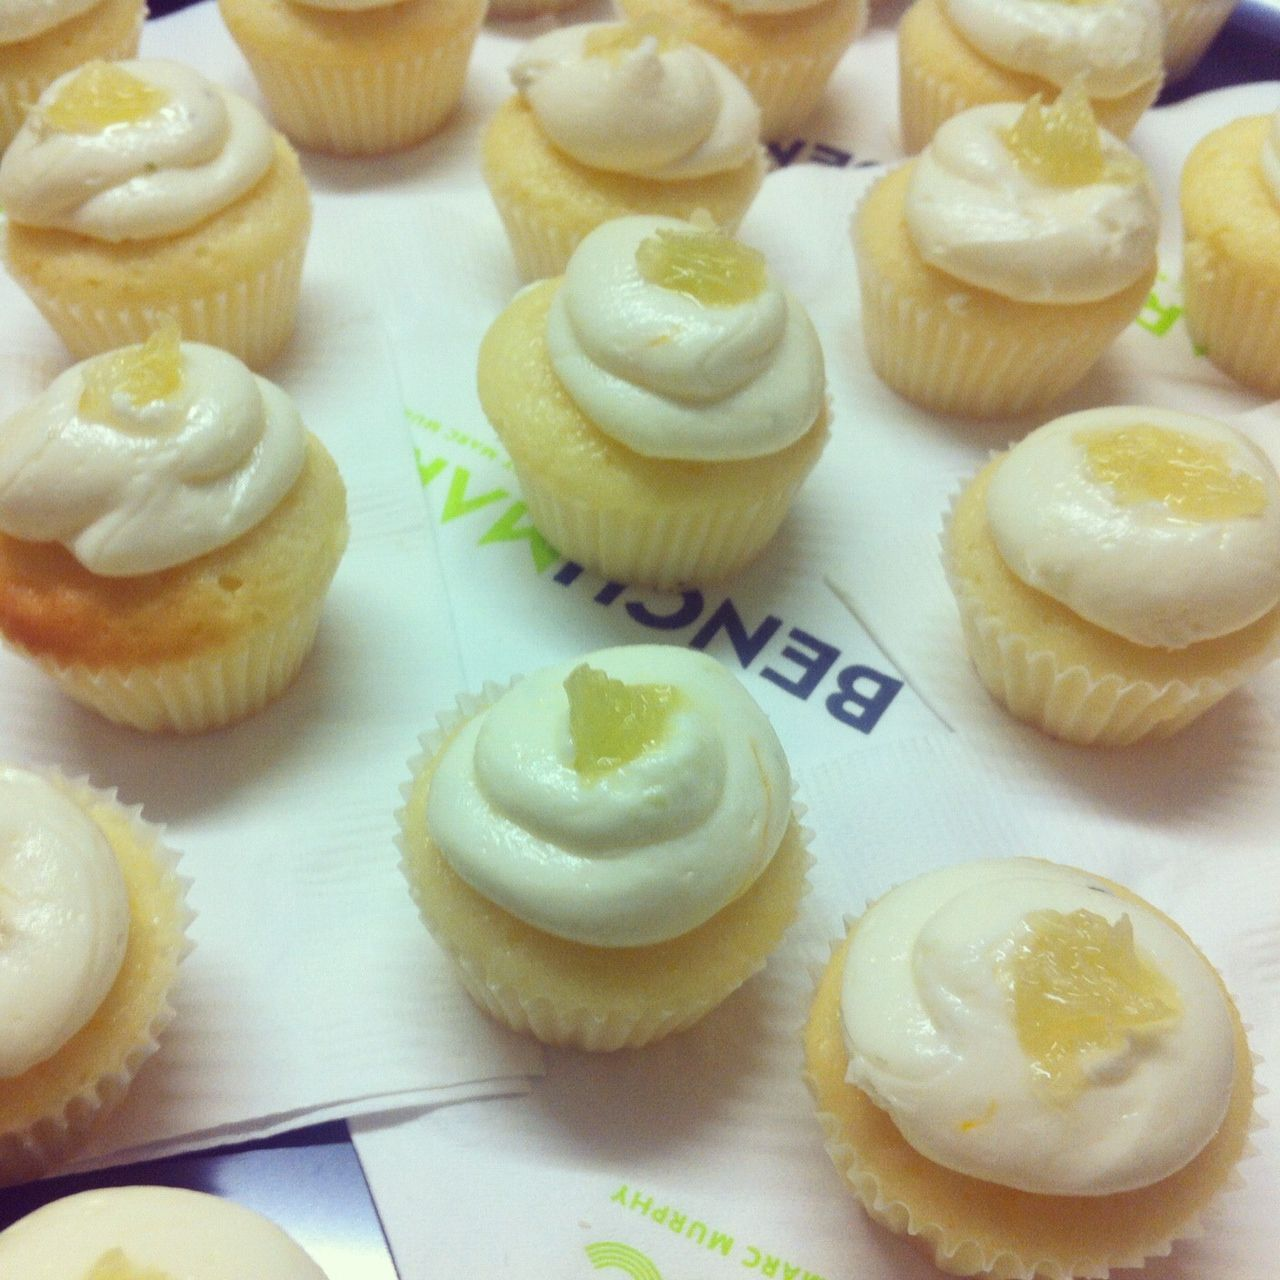 We are head-over-heels for these Butter Lane mini-cupcakes!